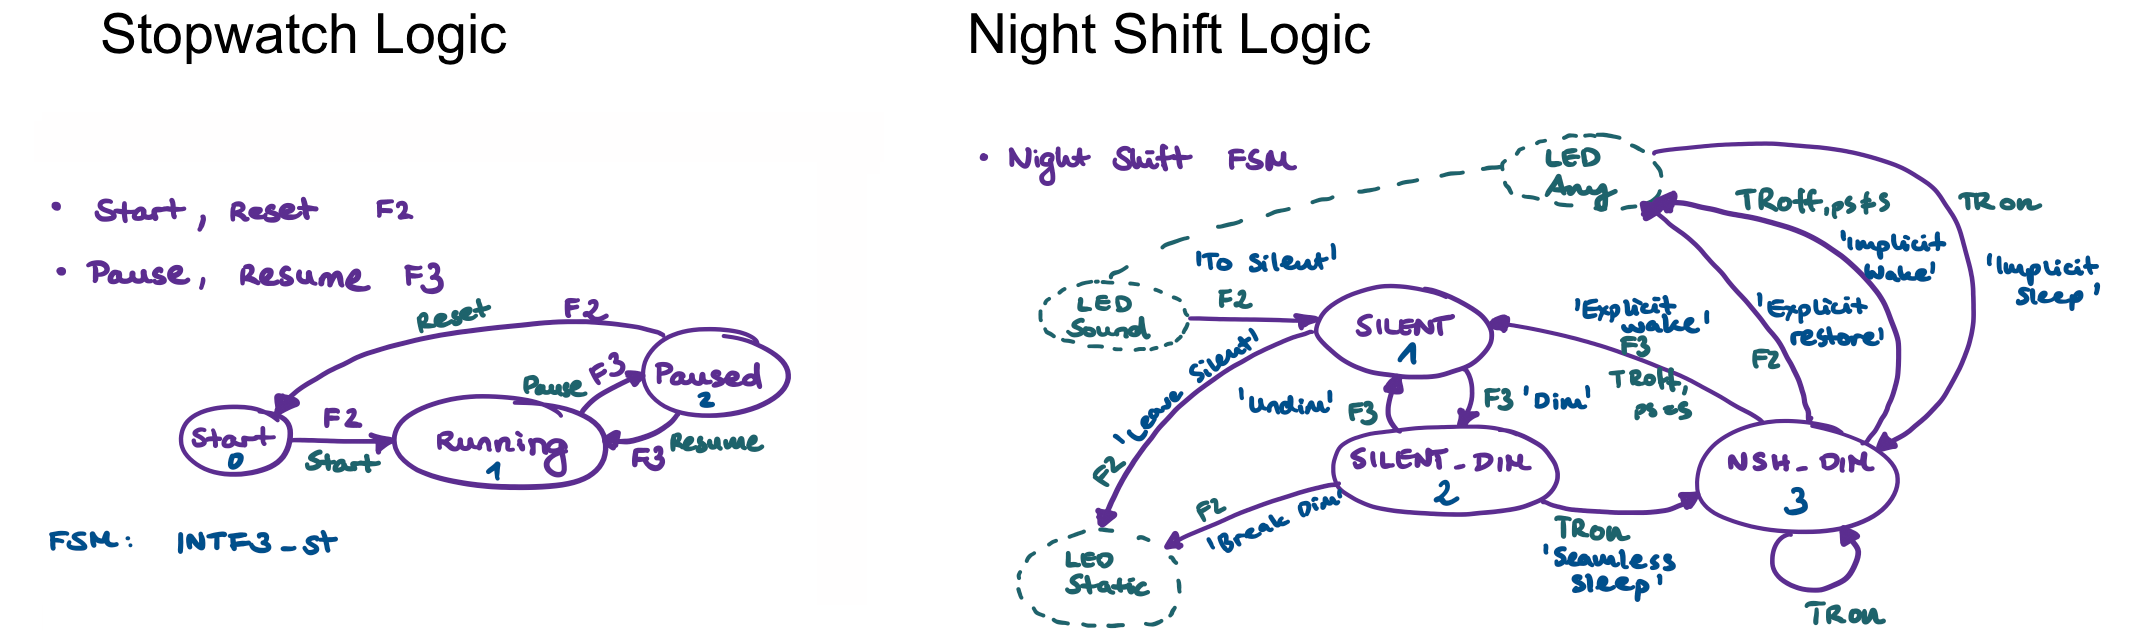 Sketch of finite state machines of stop watch and night shift found in firmware version 2.3f of Fluorescence